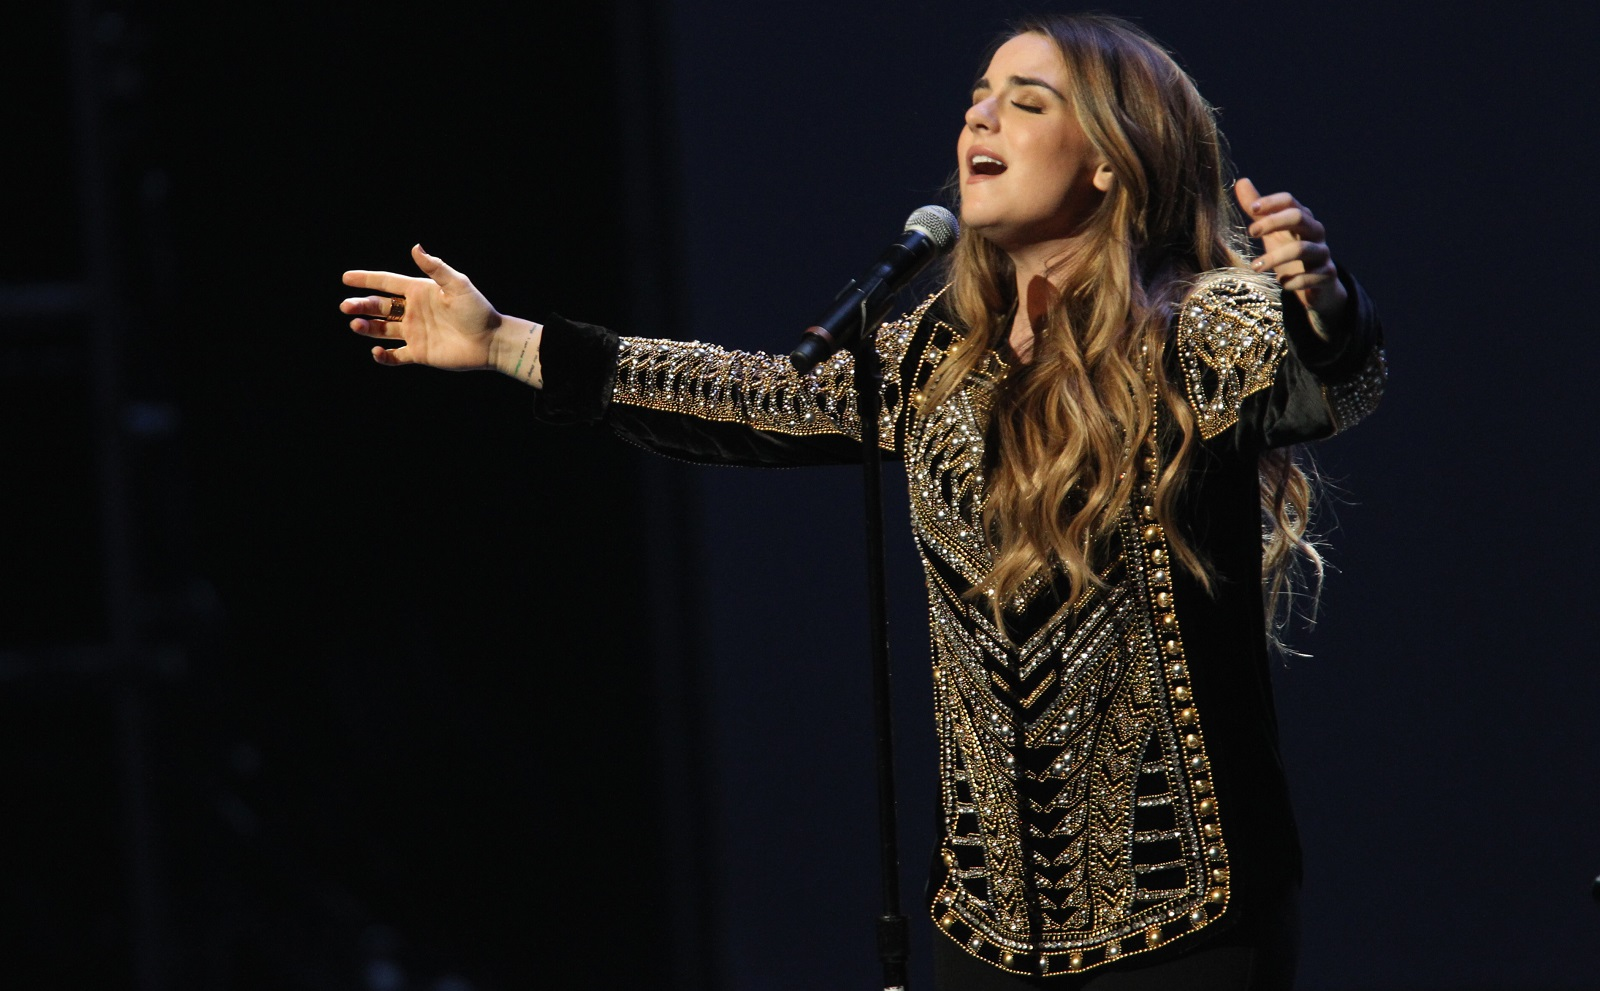 Singer-songwriter-actress JoJo will perform in Town Ballroom on Sunday. (Getty Images)